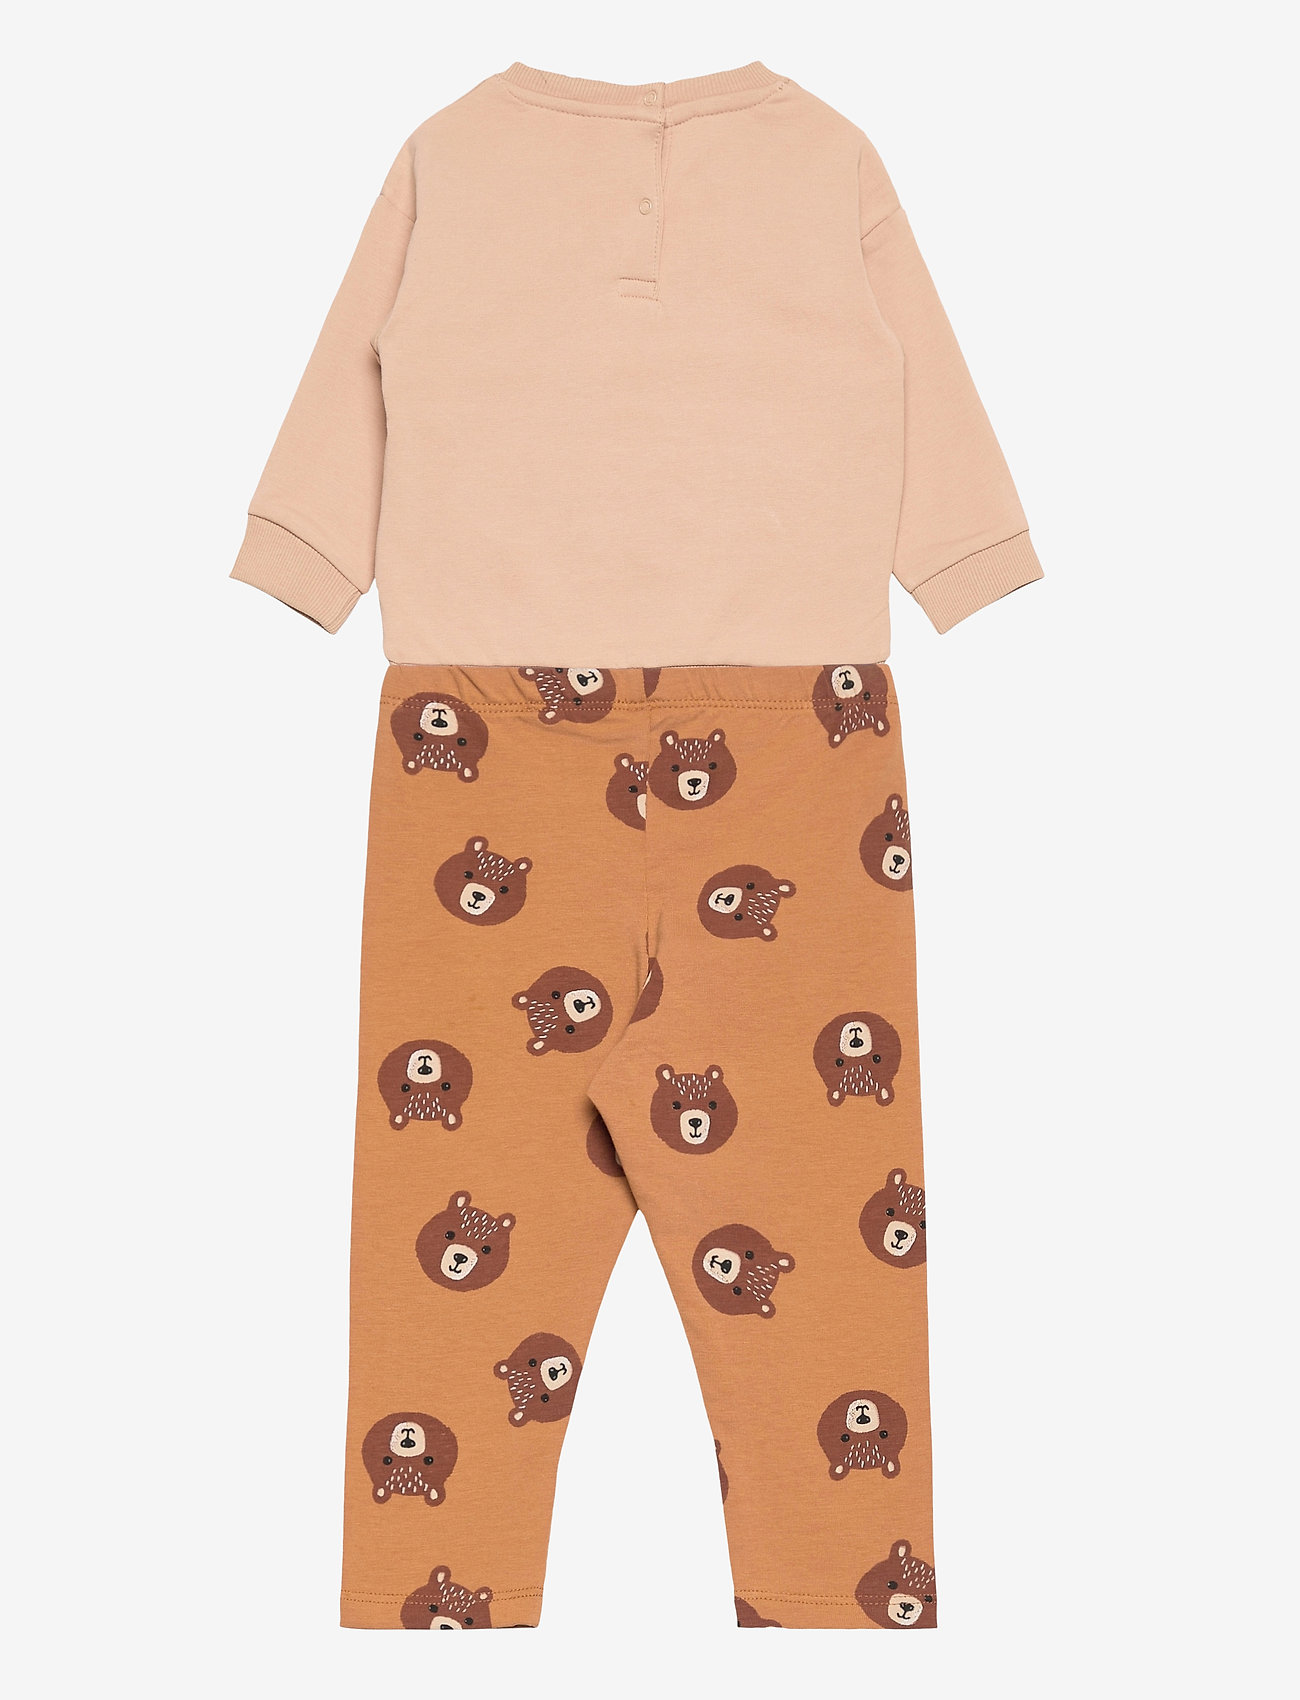 Set Sweater Leggings Bear (Beige) (17.49 €) - Lindex 2ihH8